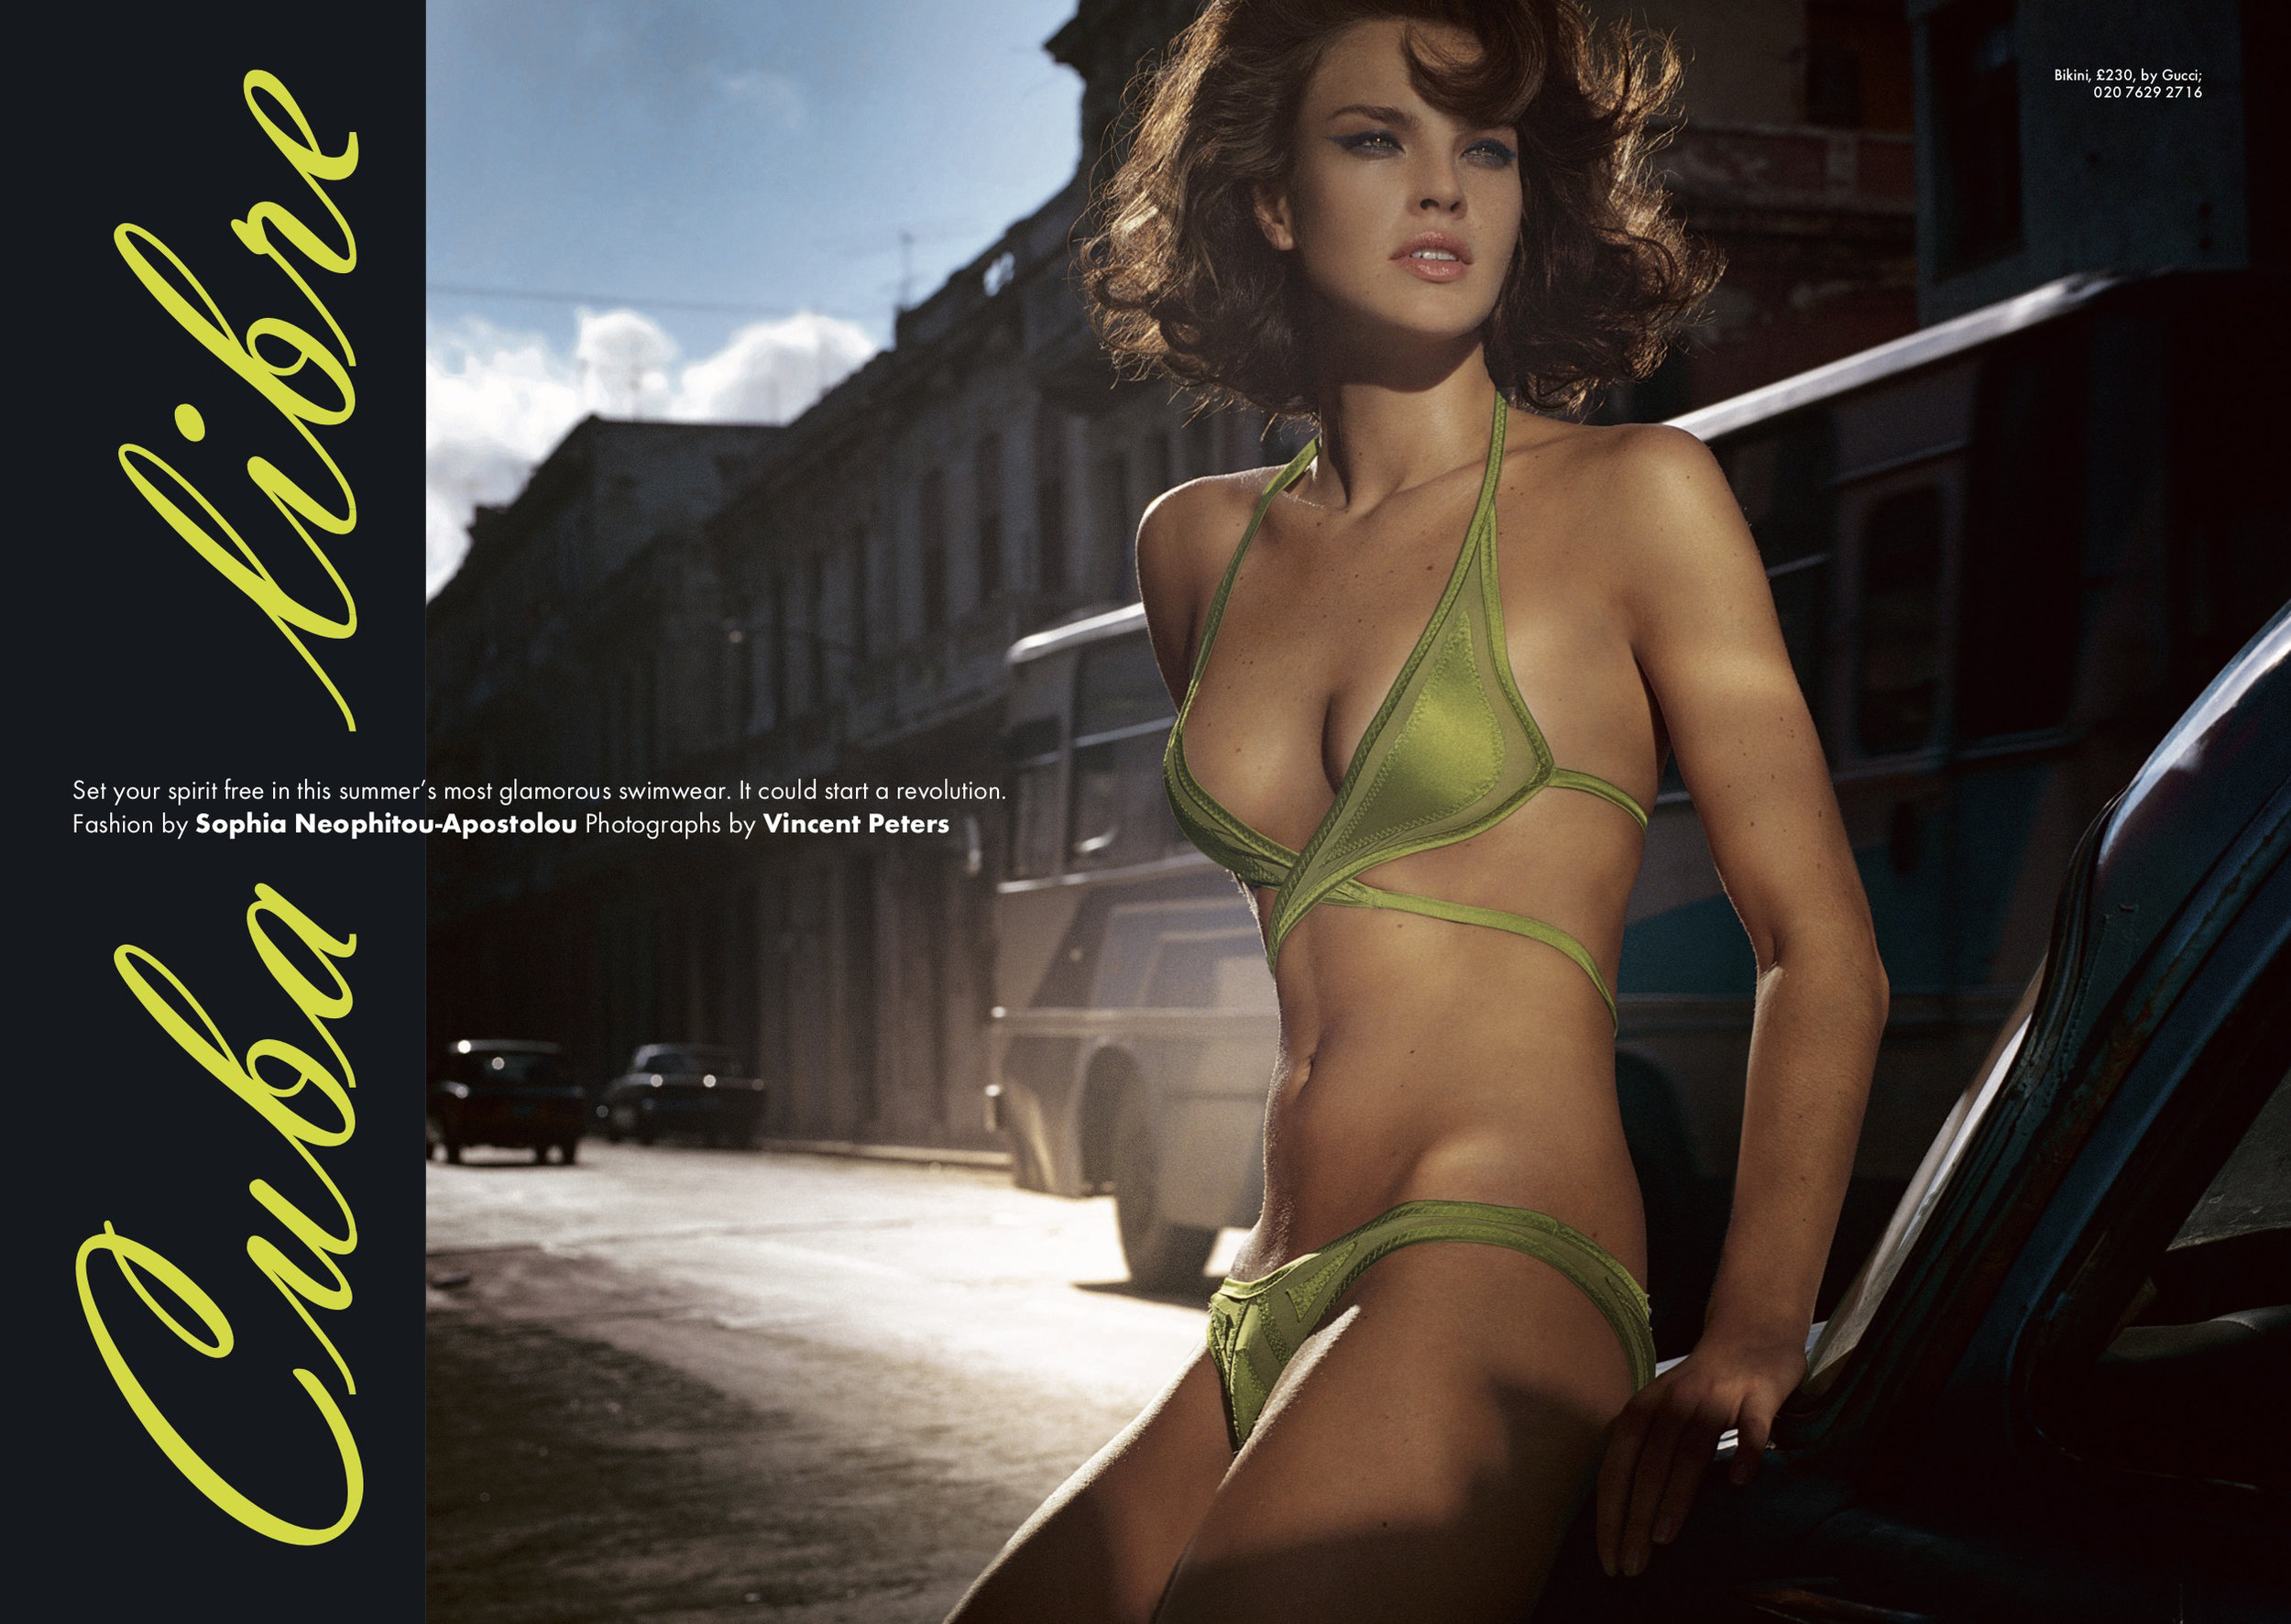 Shot by Vincent Peters, styled by Sophia Neophitou - Apostolou.